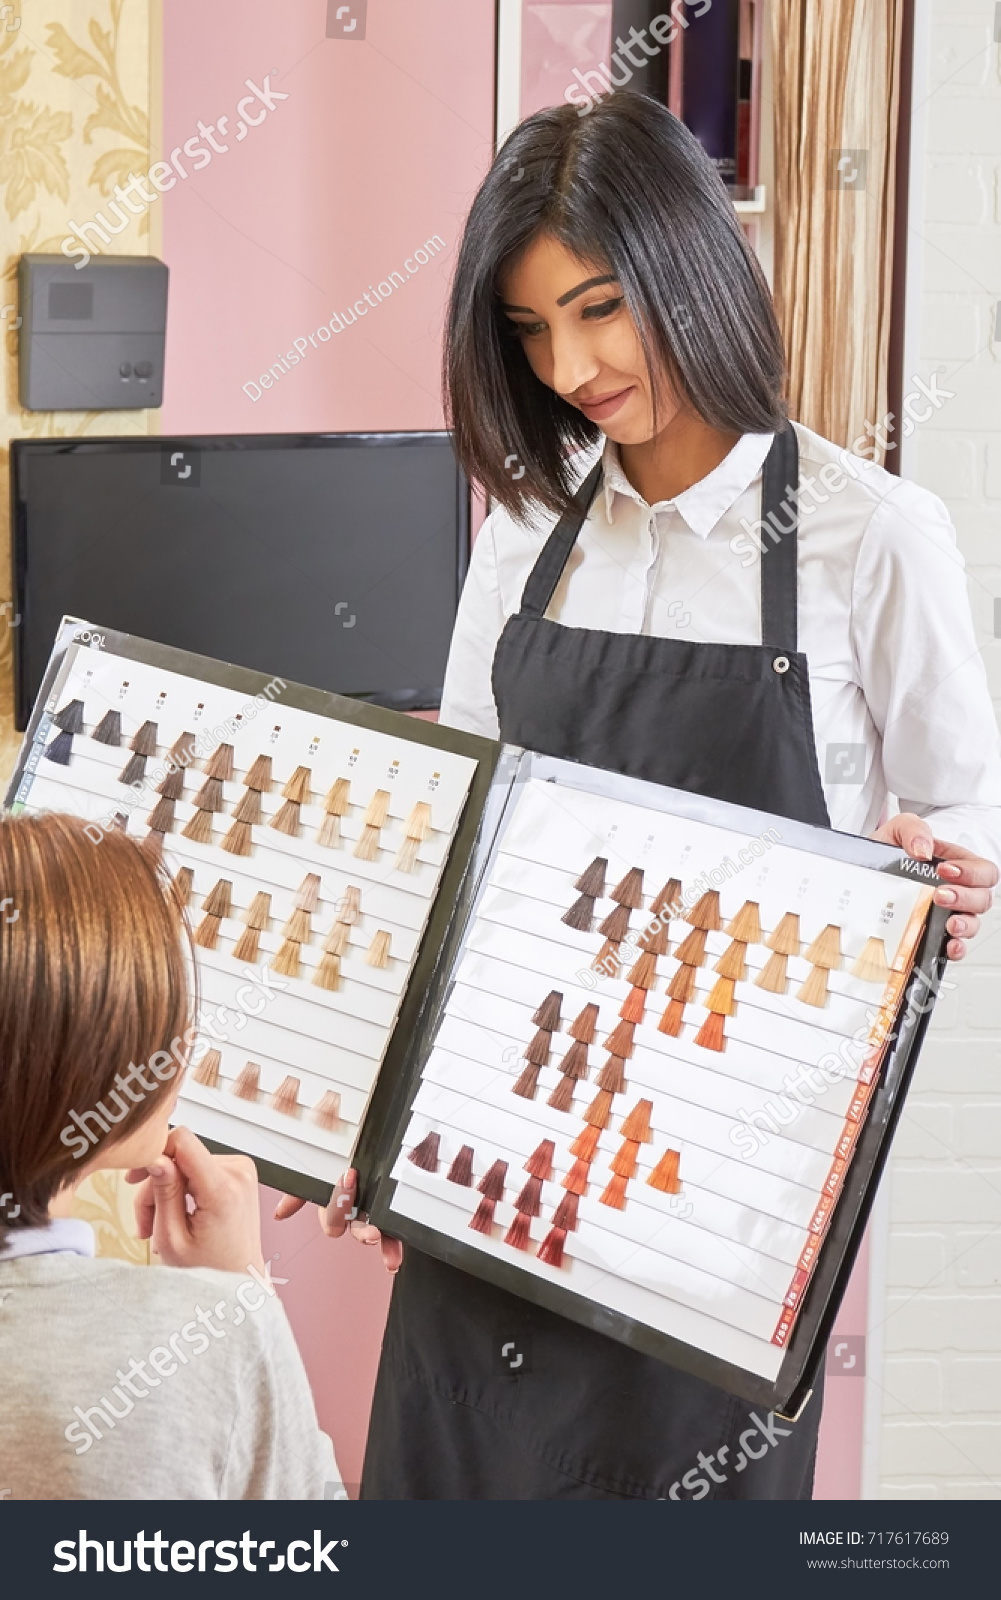 Stylist Holding Hair Swatches Chart Woman Stock Photo Edit Now